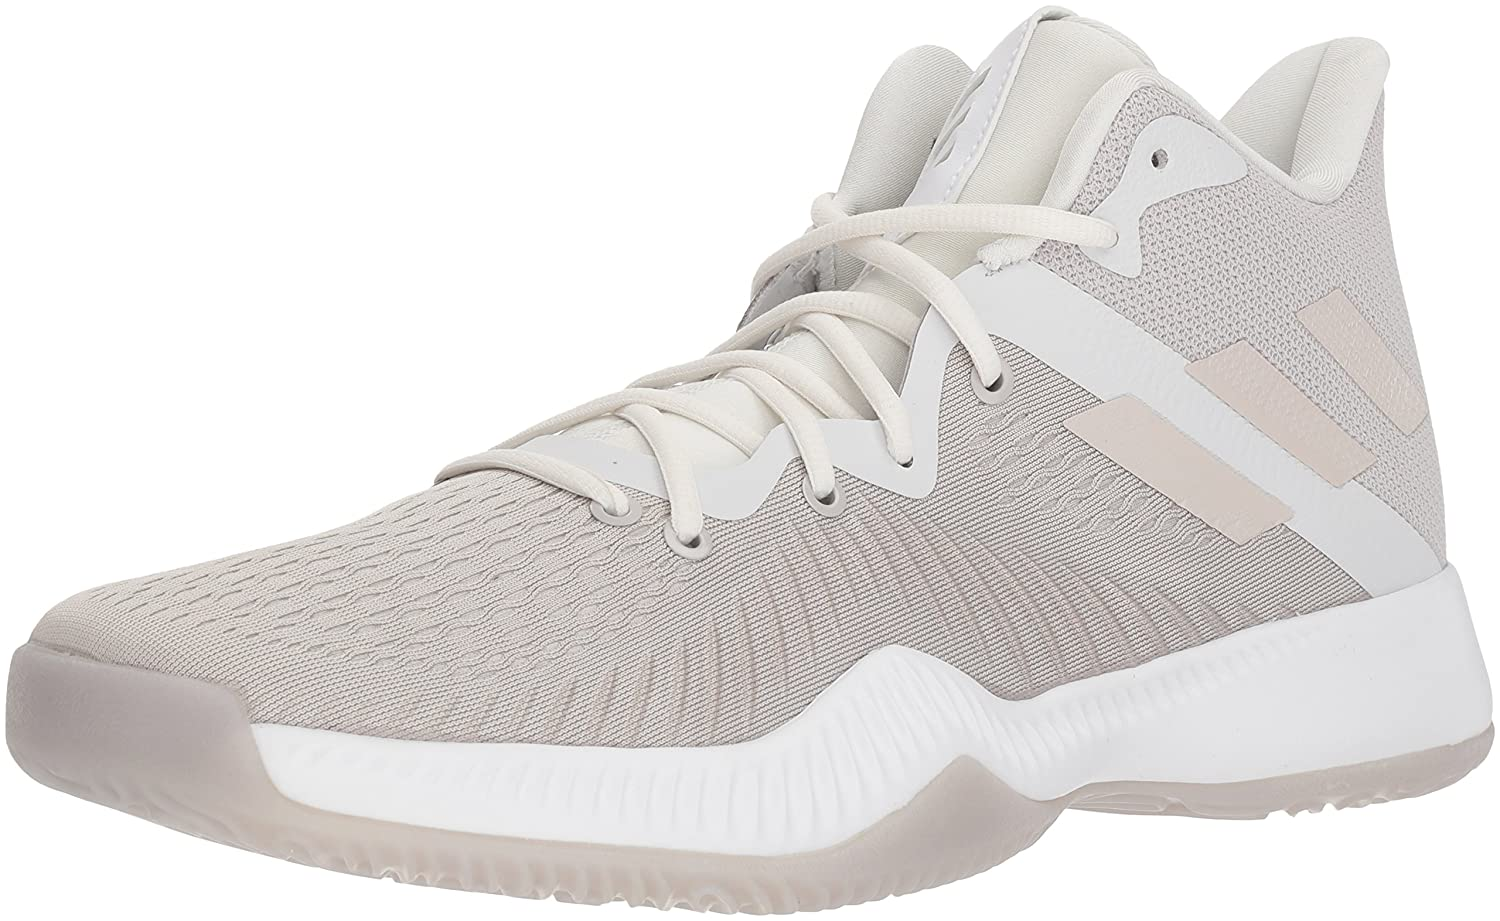 adidas Men's Mad Bounce Basketball Shoe B073PDHJ1Z 11 D(M) US|Ftwr White, Chalk Pearl S, Crystal White S